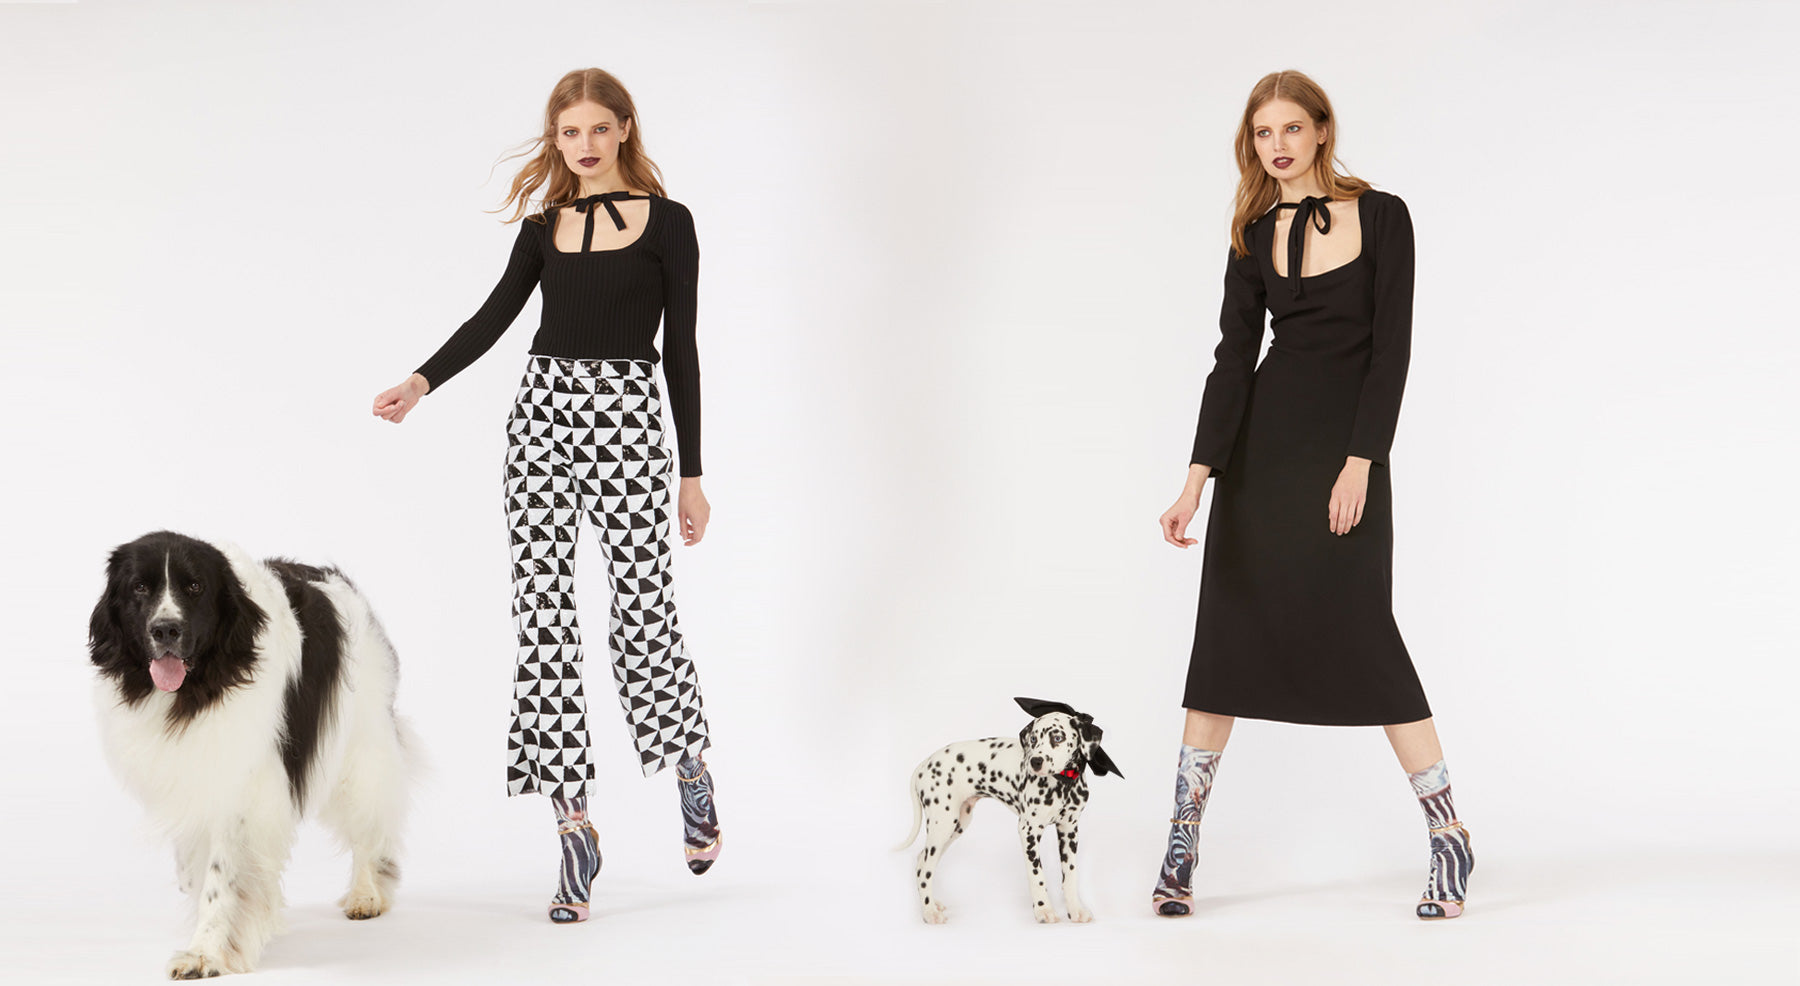 Models wearing the sequin Illusion pants and Dakota tie sweater and the Waverly tie neck dress accompanied by dog.